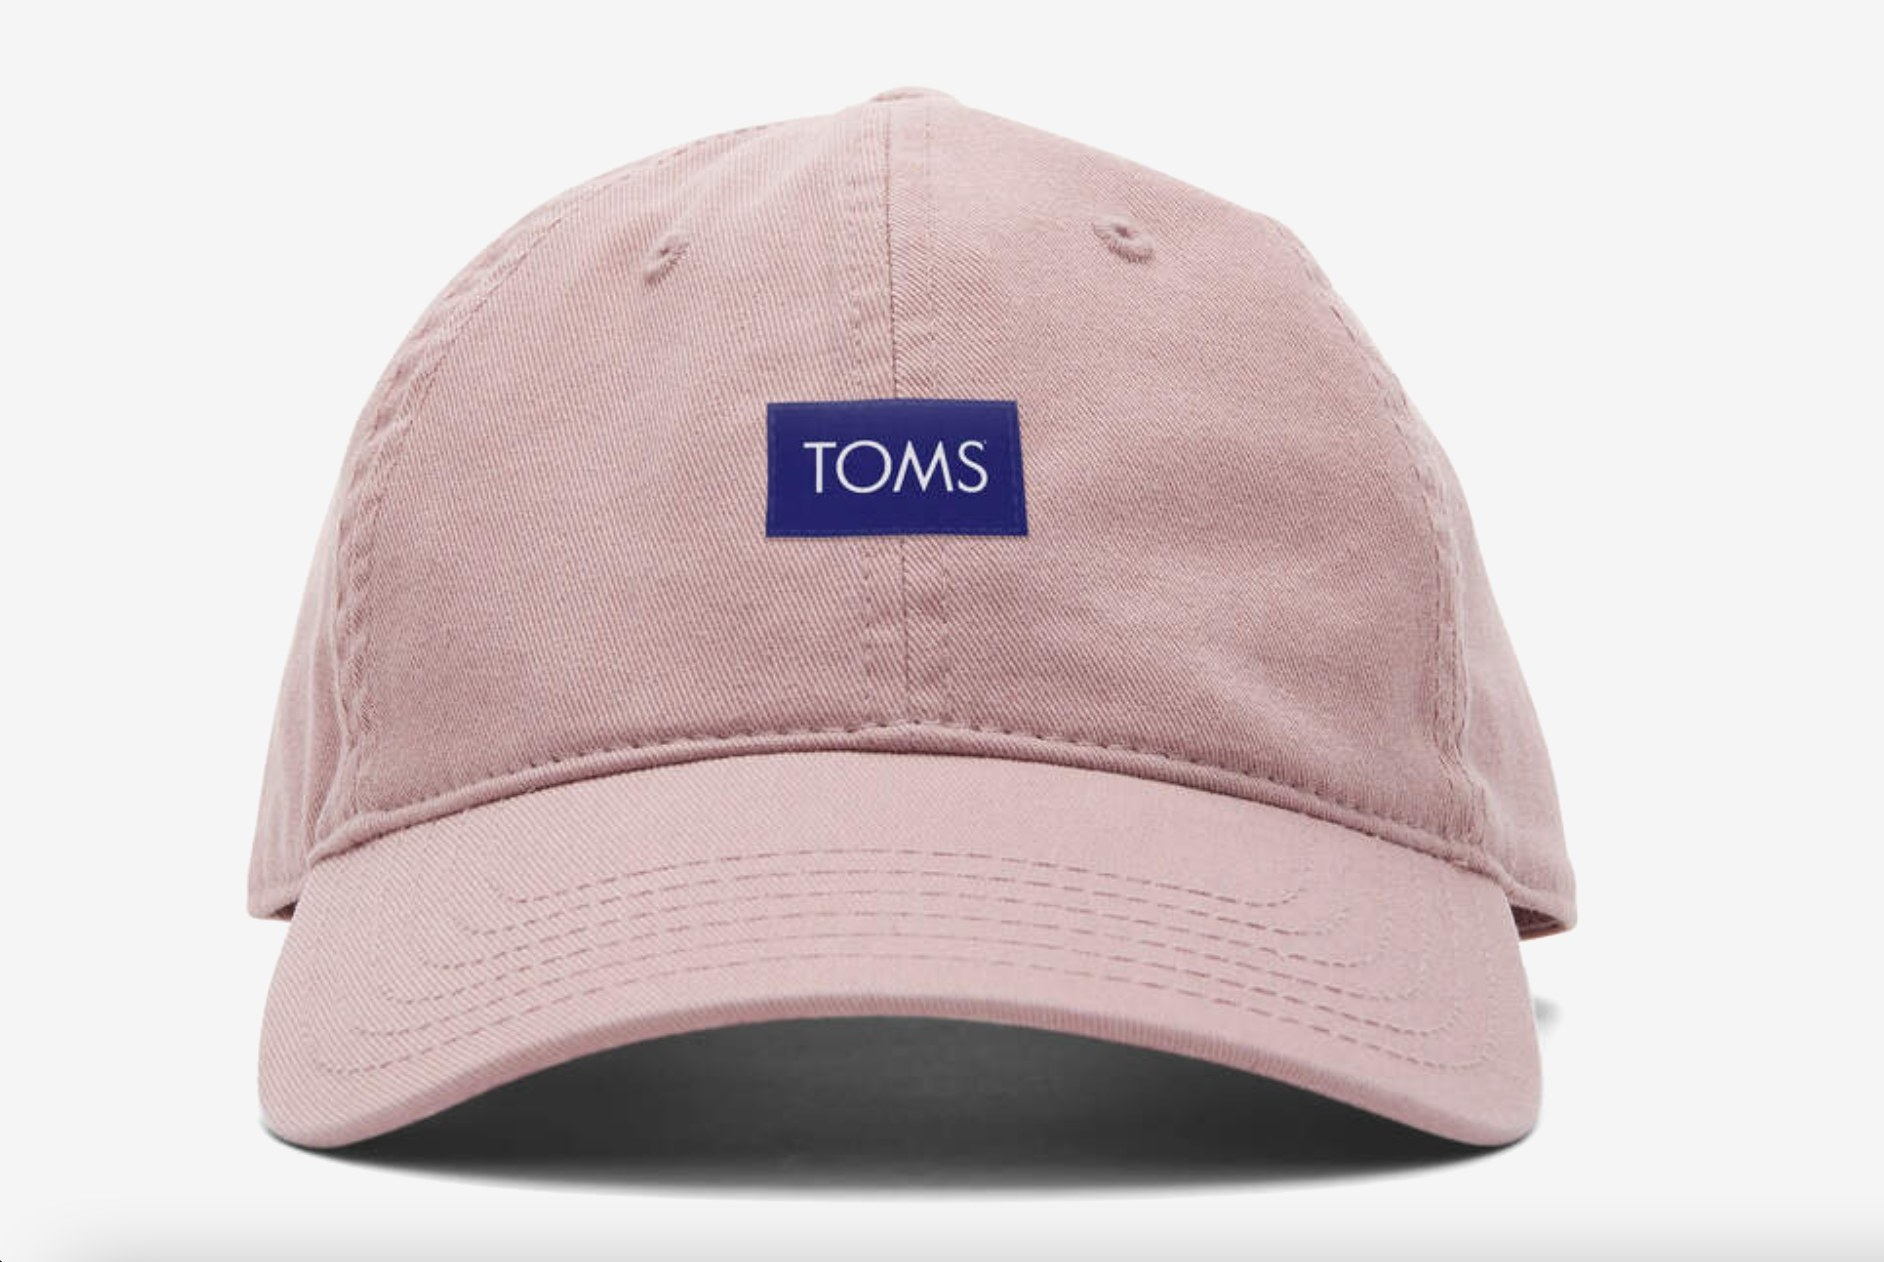 the Toms logo dad hat in dusty rose